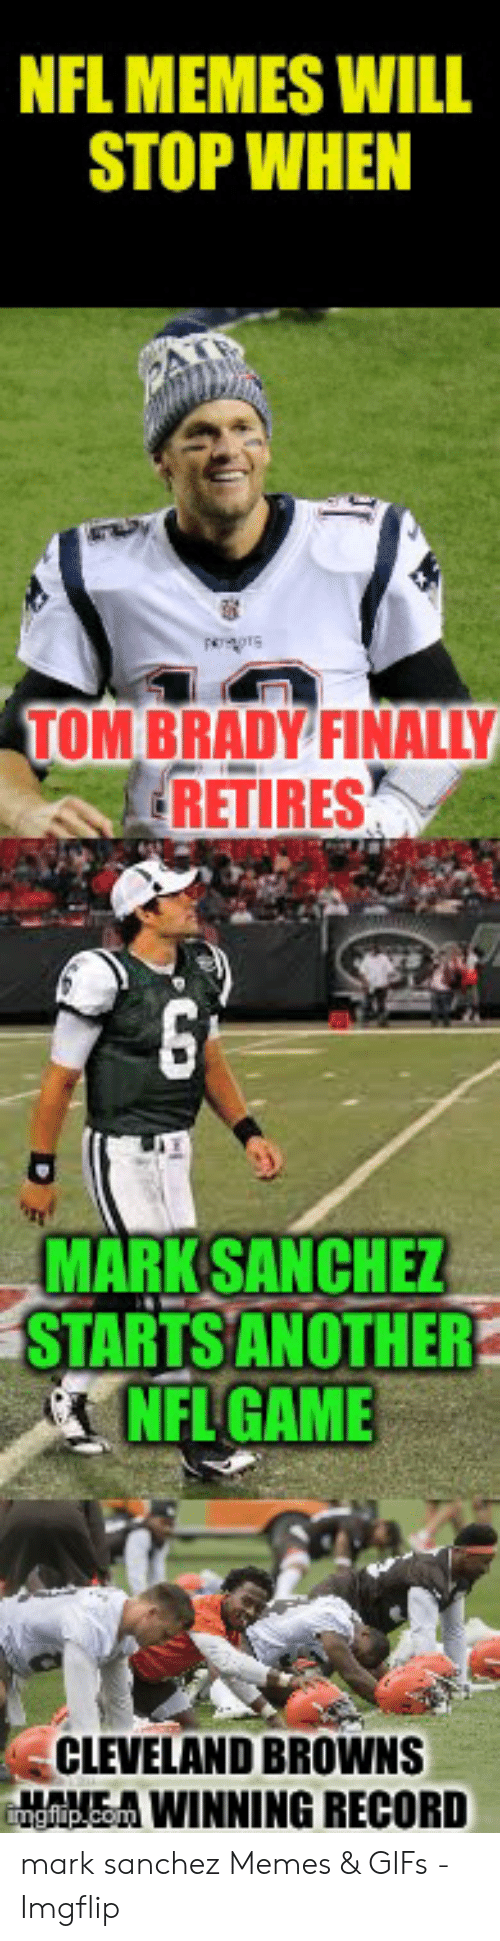 Nfl Memes Will Stop When Persgrs Tom Brady Finally Retires Mark Sanchez Startsanother Nfl Game Cleveland Browns Nwinning Record Uave Imgfiipcom Mark Sanchez Memes Gifs Imgflip Cleveland Browns Meme